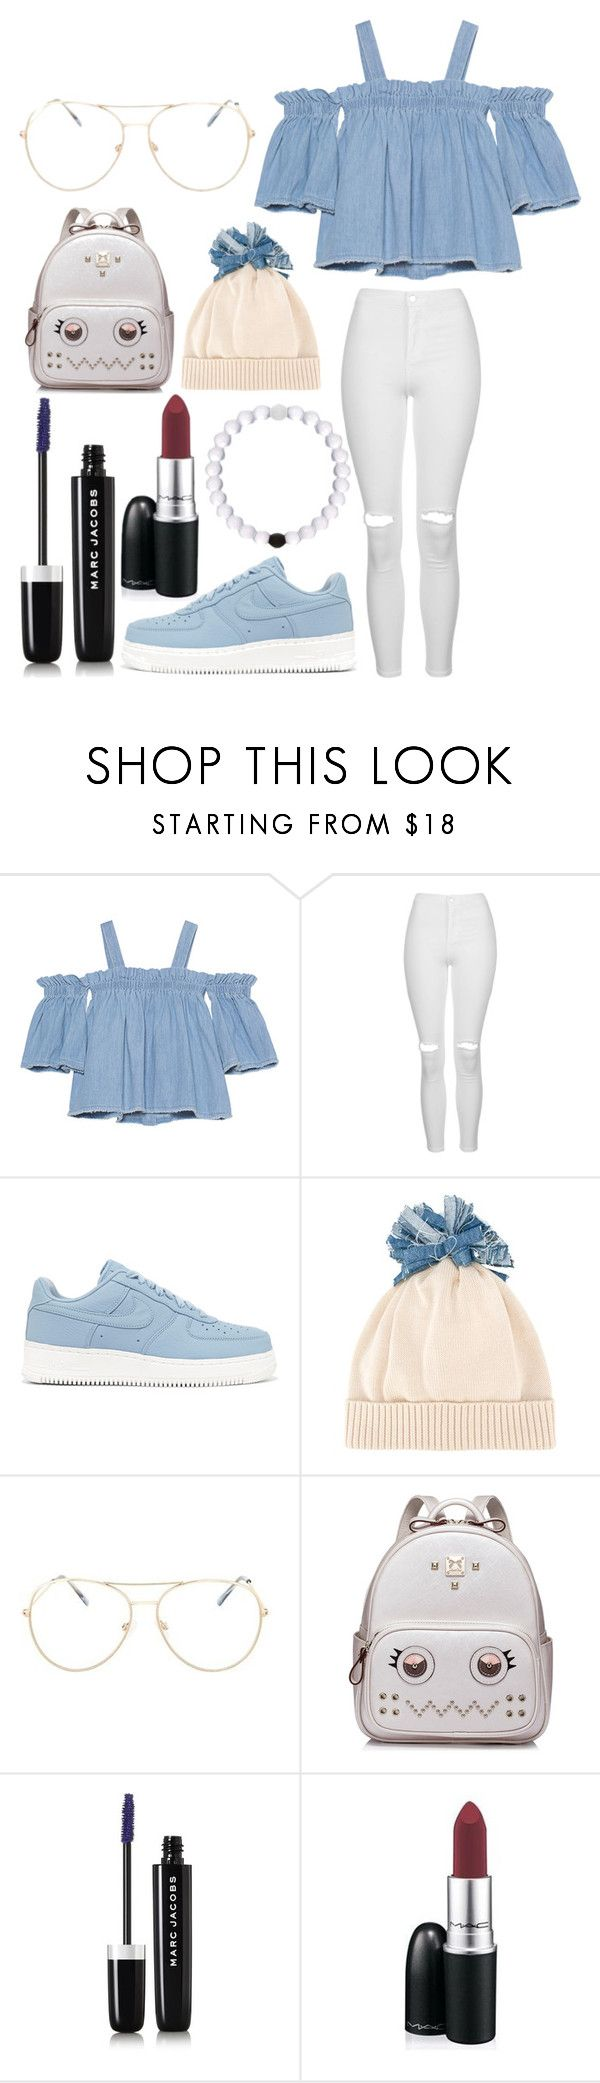 """""""Untitled #341"""" by alreemaljassim ❤ liked on Polyvore featuring SJYP, Topshop, NIKE, Federica Moretti, WithChic, Marc Jacobs and MAC Cosmetics"""